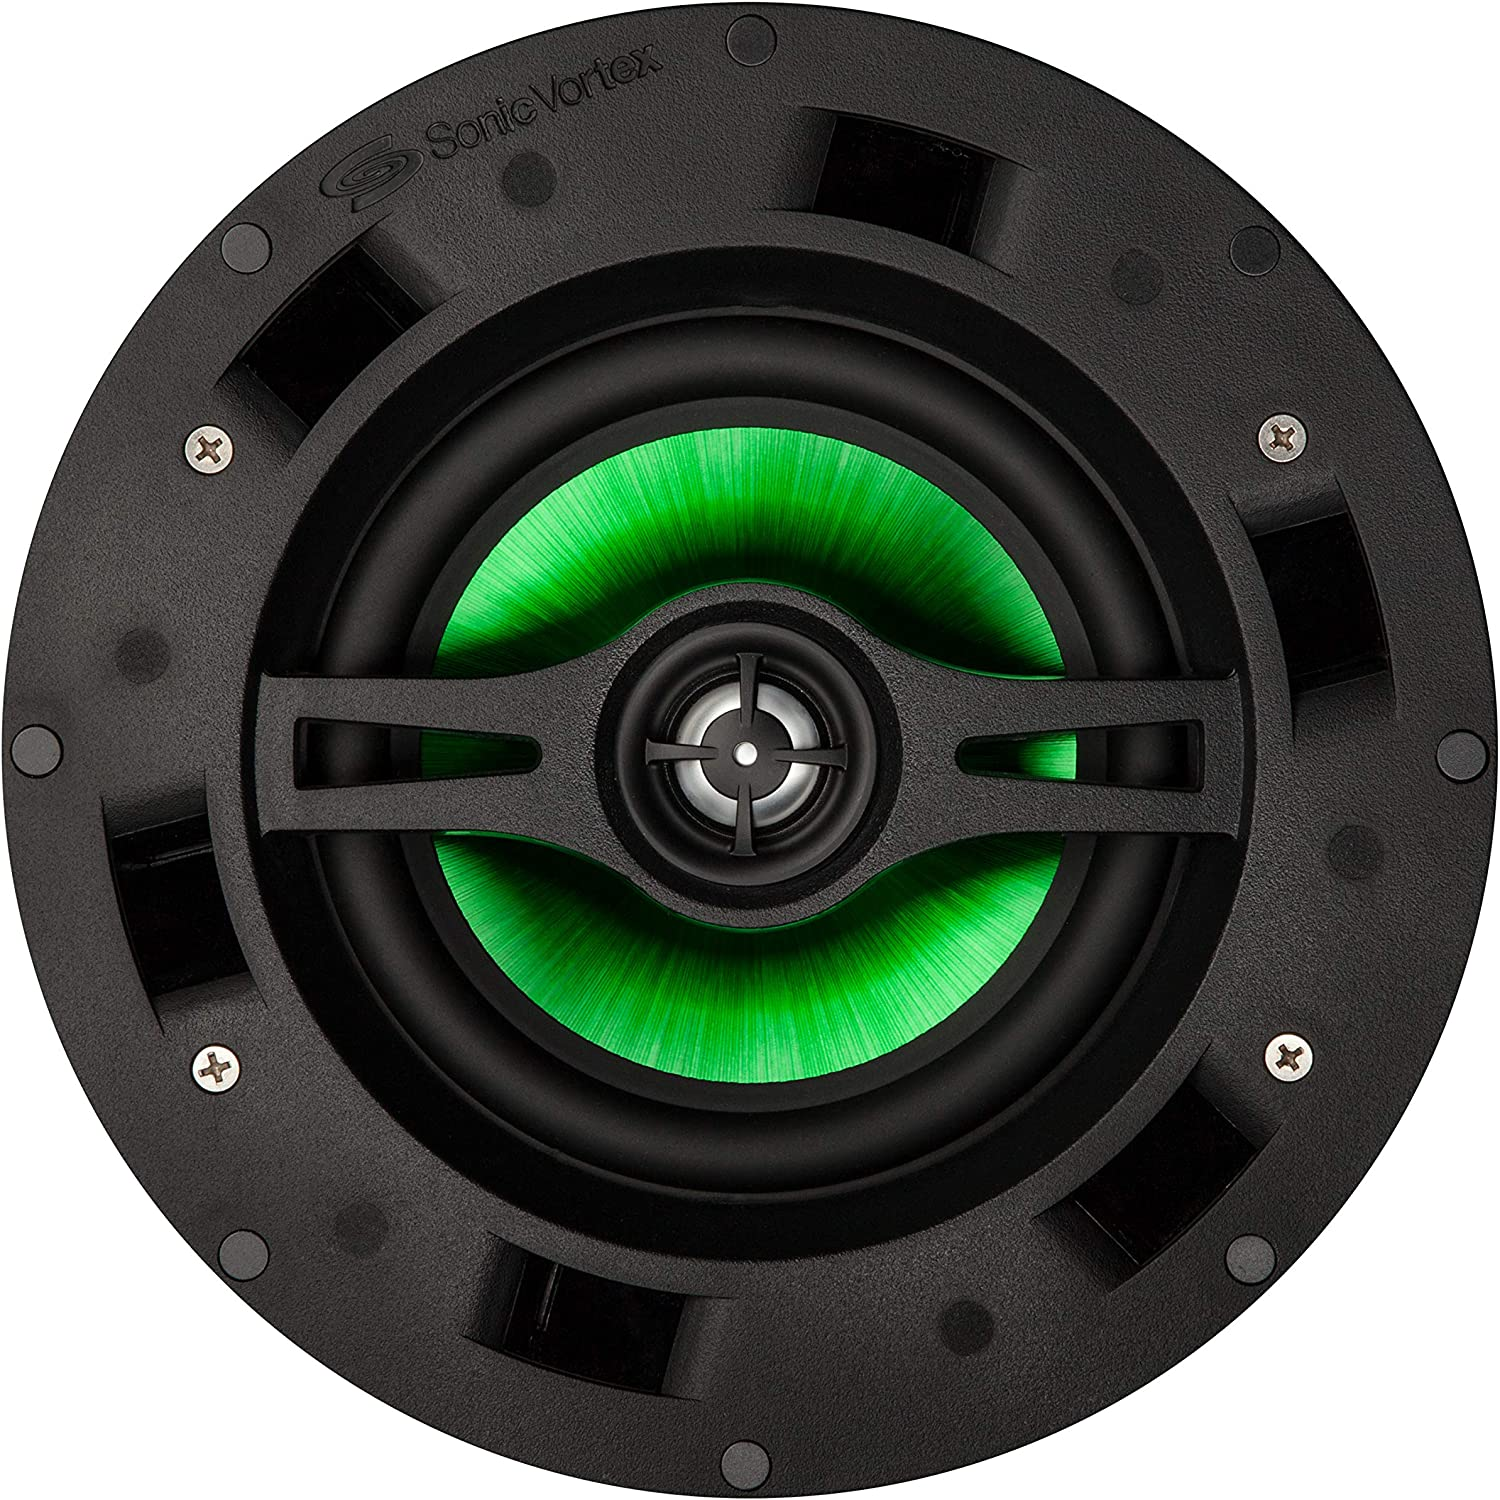 Beale Street IC6DVC-B Speakers - 6.5-Inch Dual Voice Coil Ceiling Speakers for Home Theater Systems